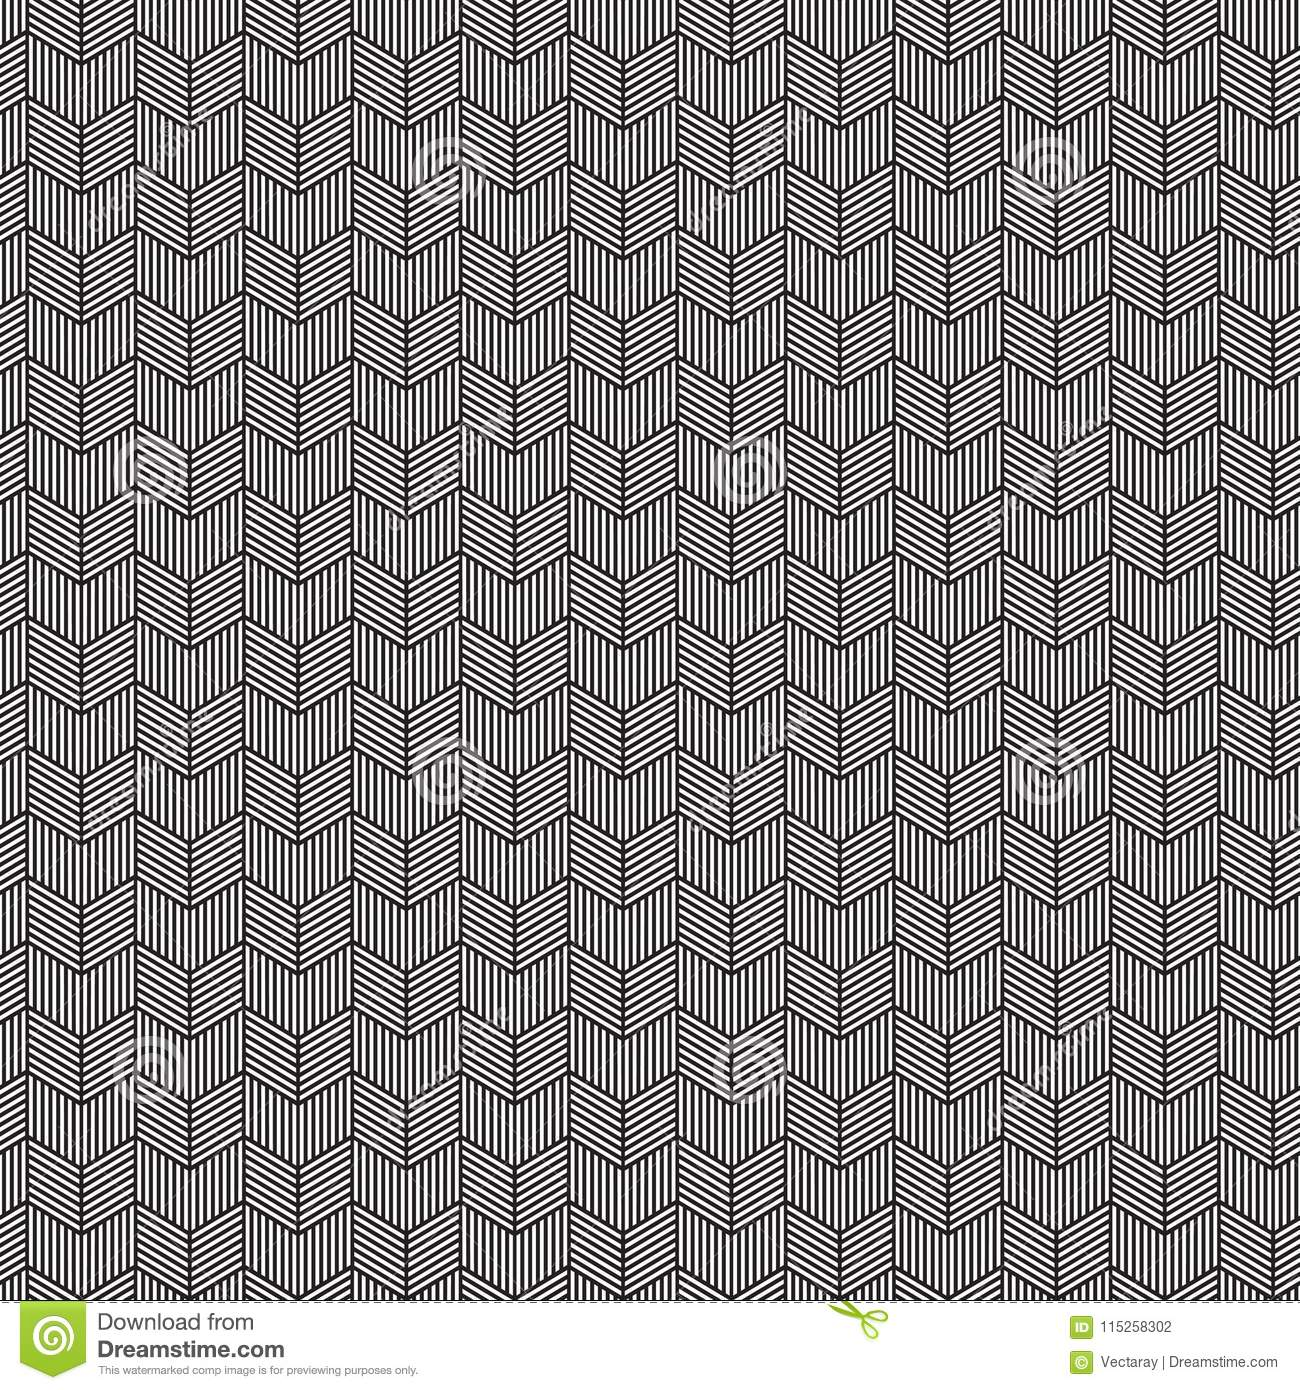 Seamless Chevron Pattern Texture, Etched With Parallel Line